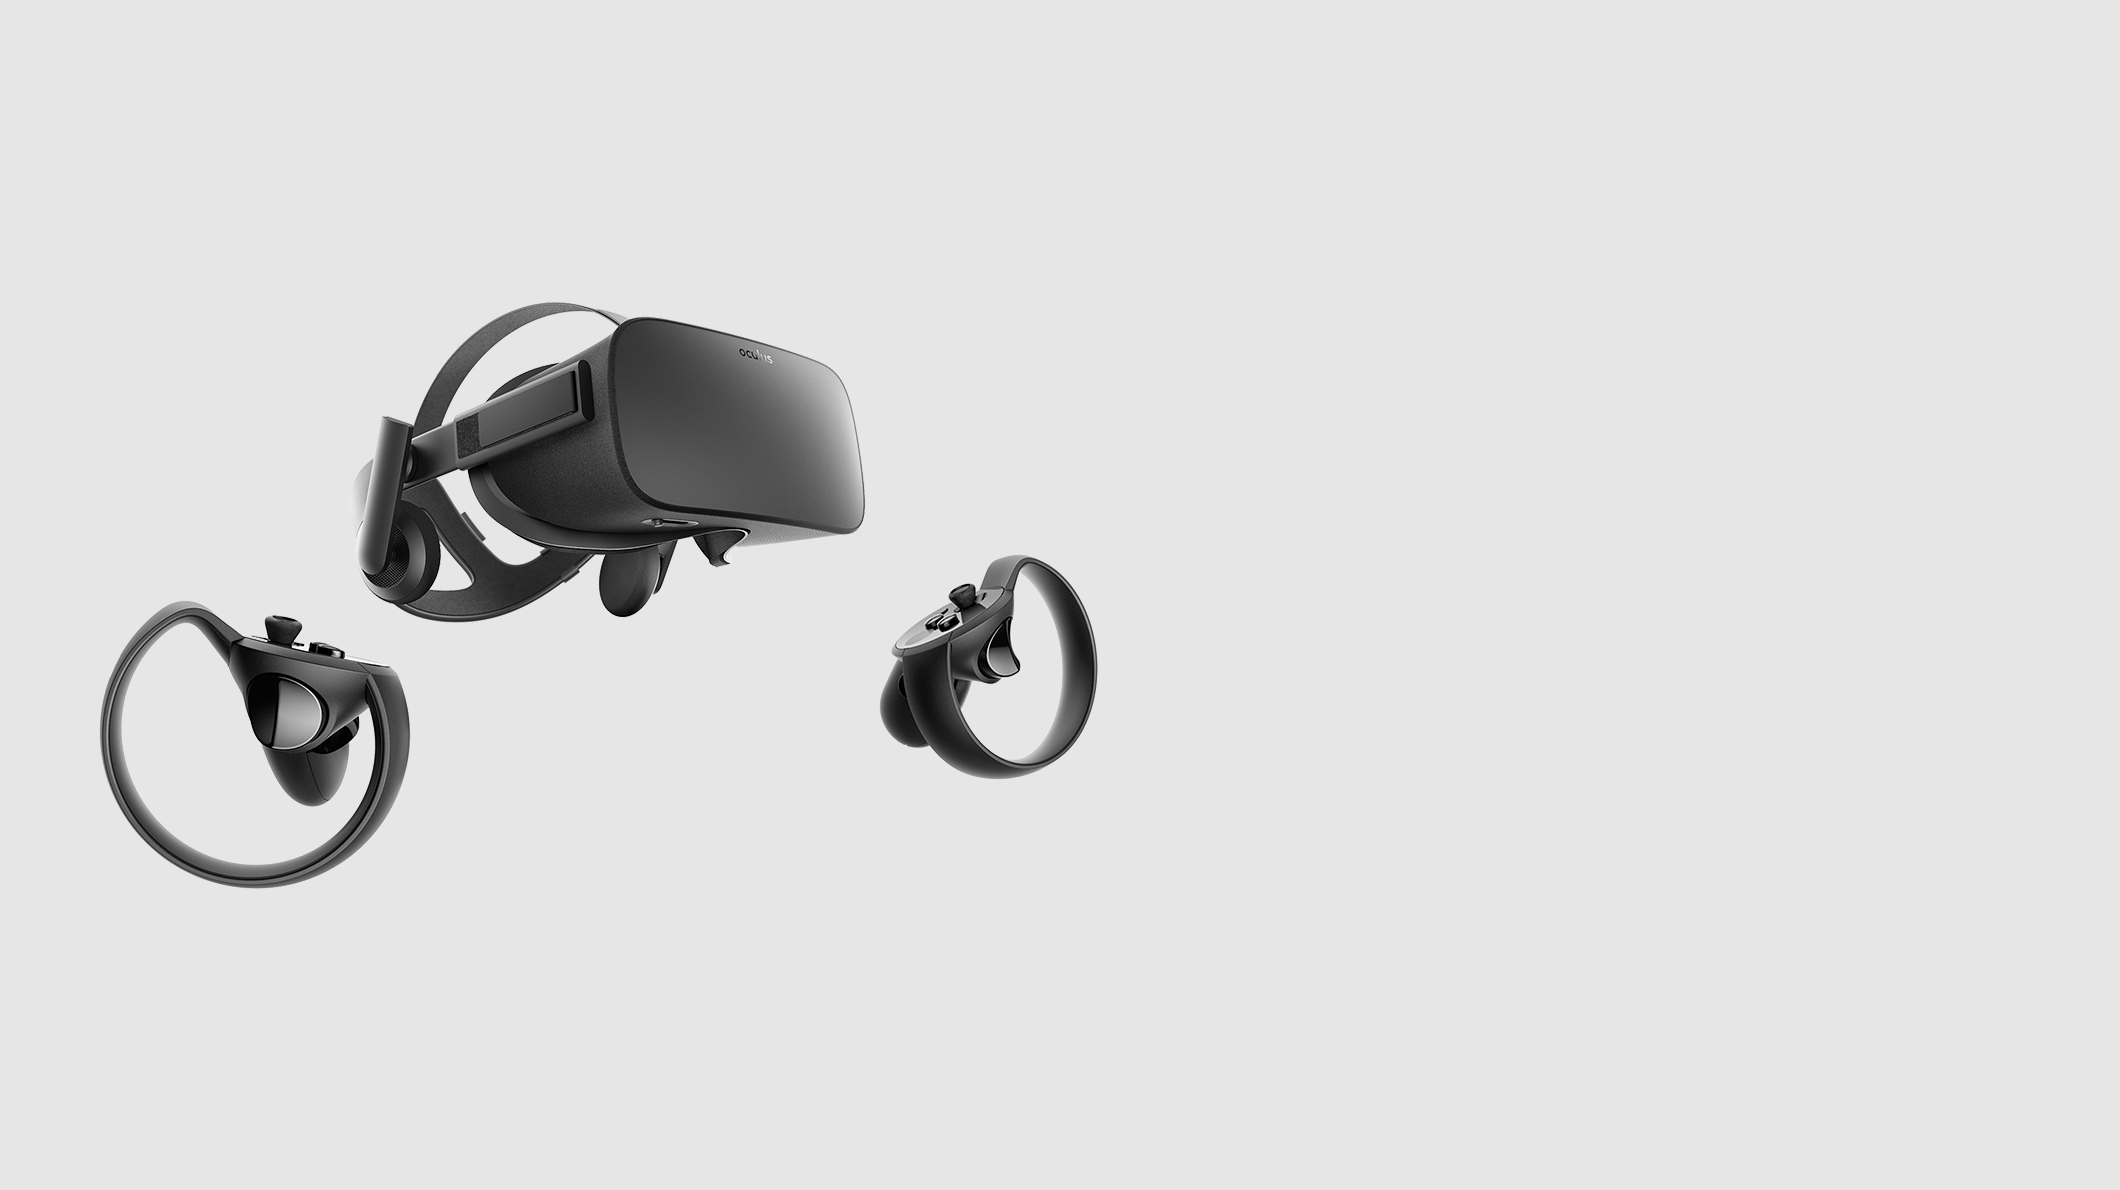 Oculus Rift and two touch controllers